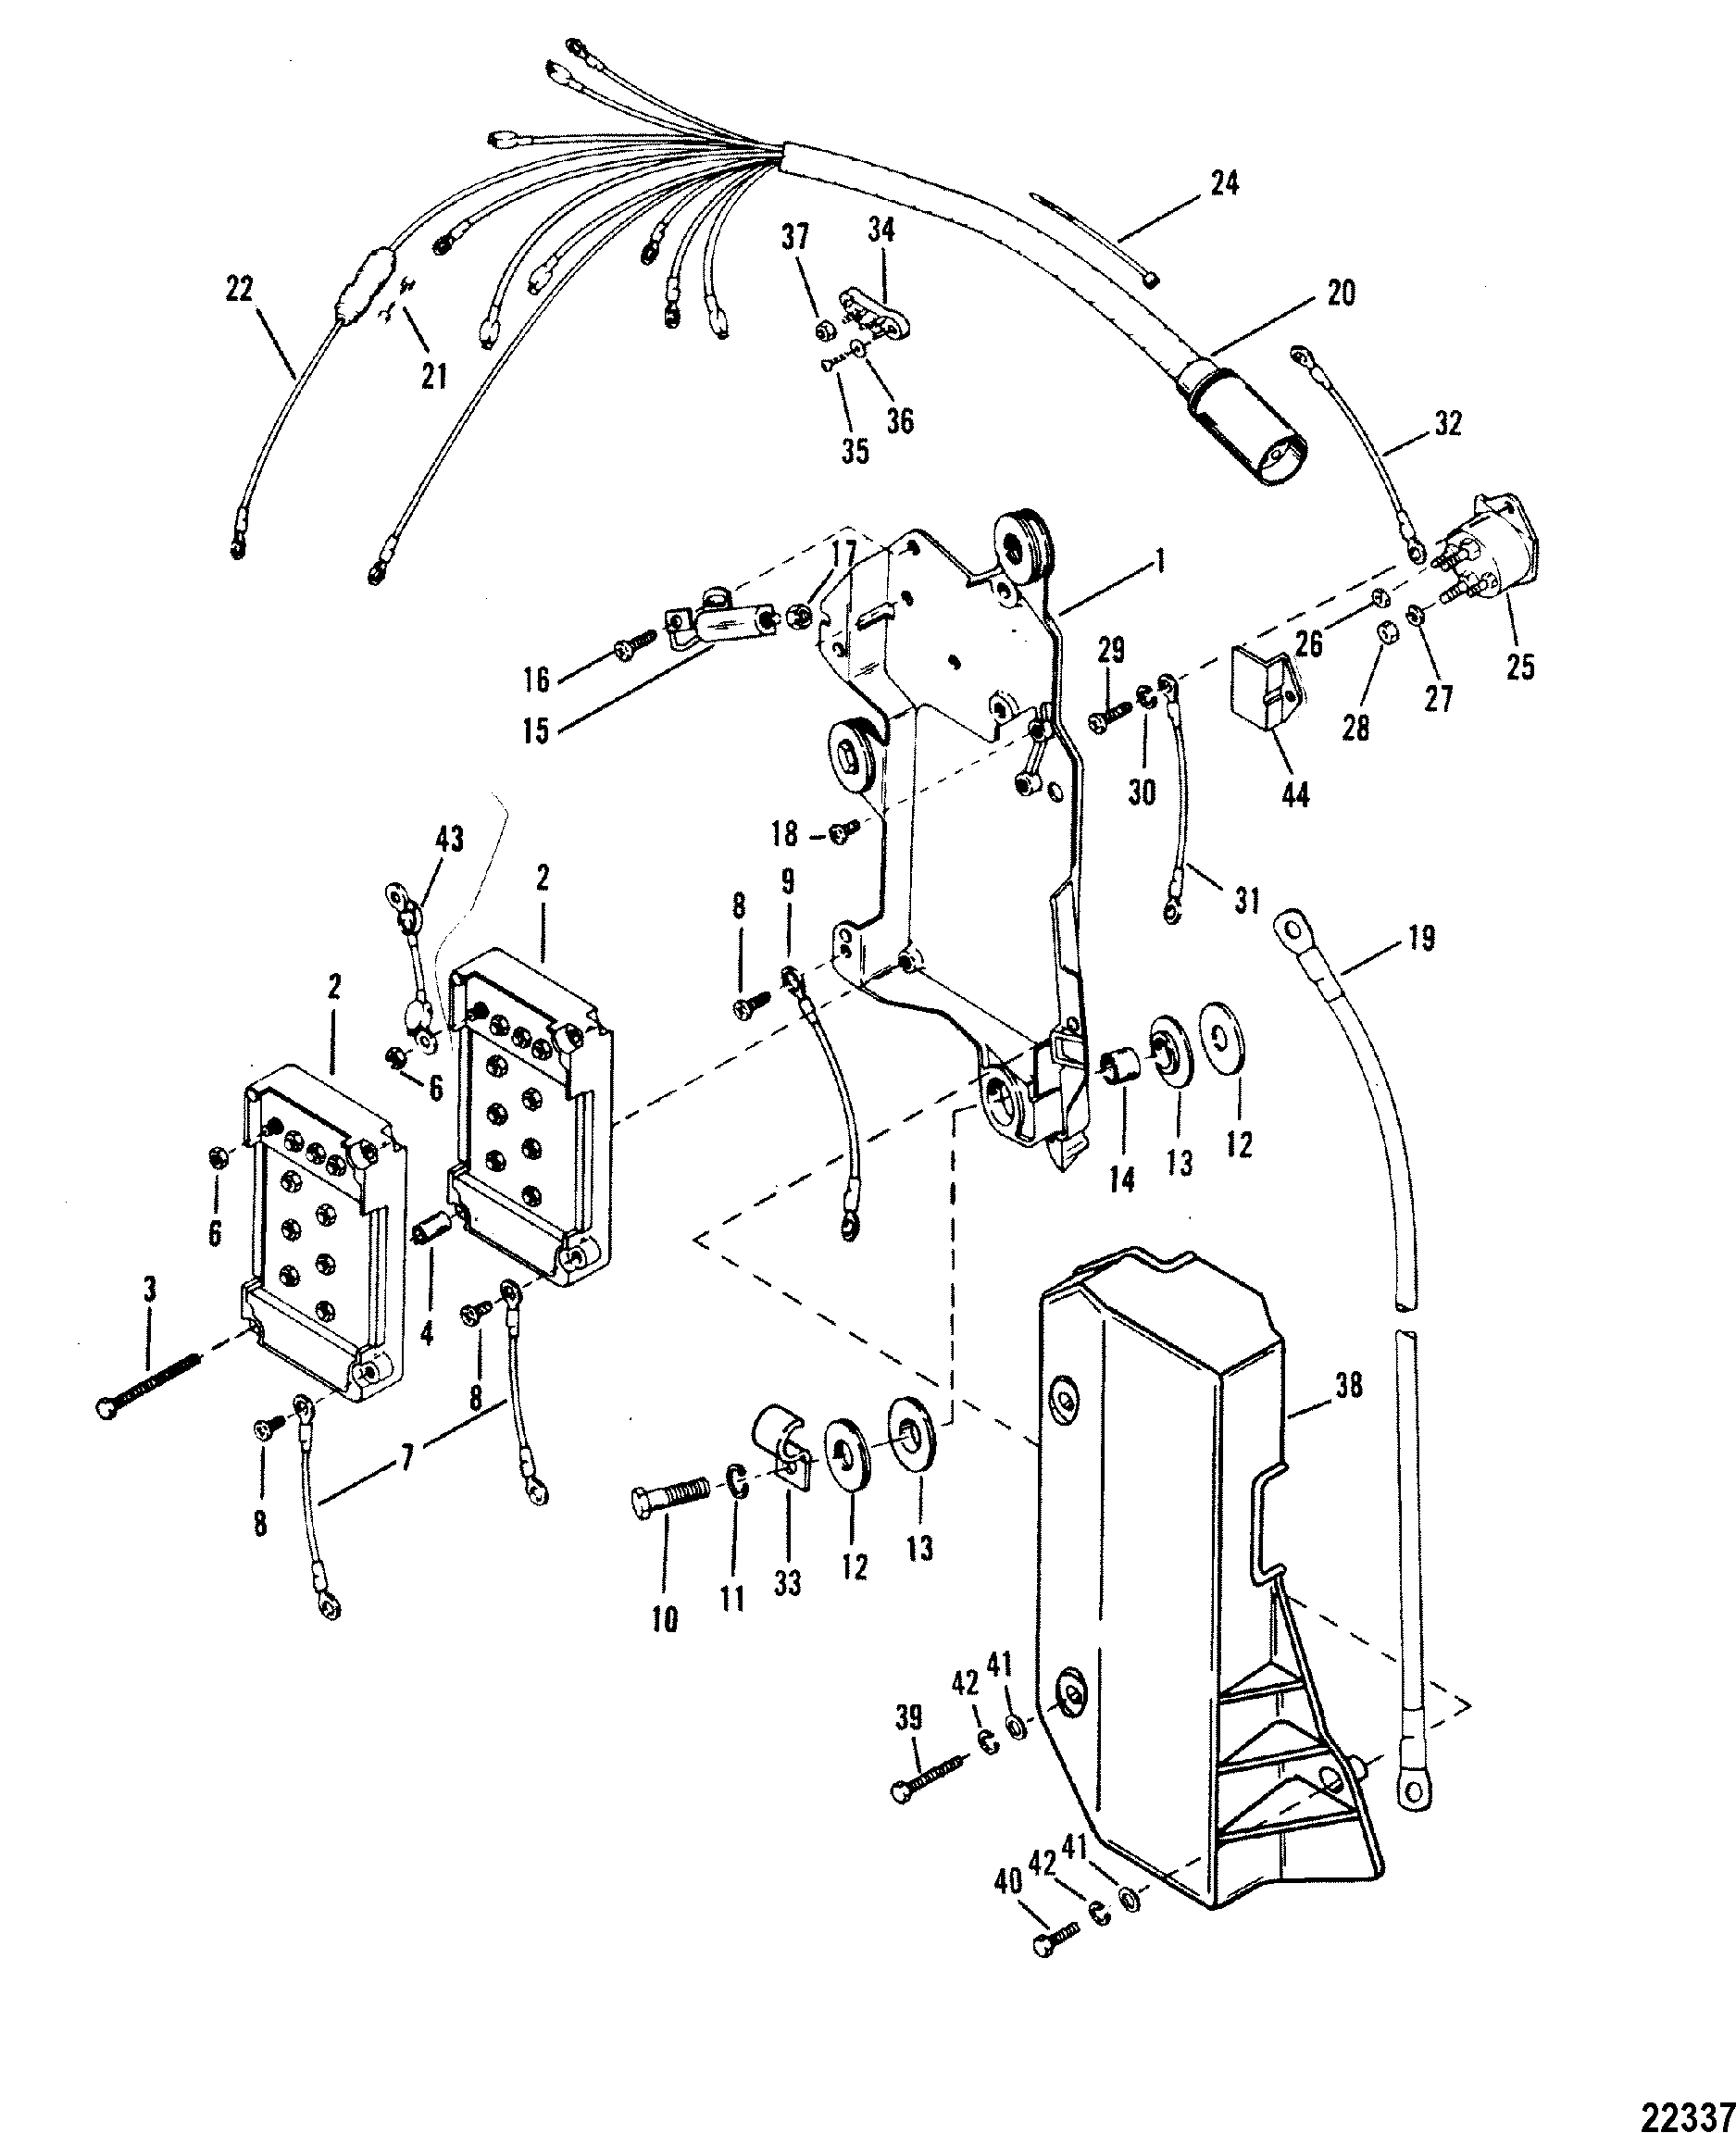 on a ford fusion moreover motor starter wiring diagram on mercury mariner fuse diagram on 2007 mercury milan wiring diagram 2005 ford style starter